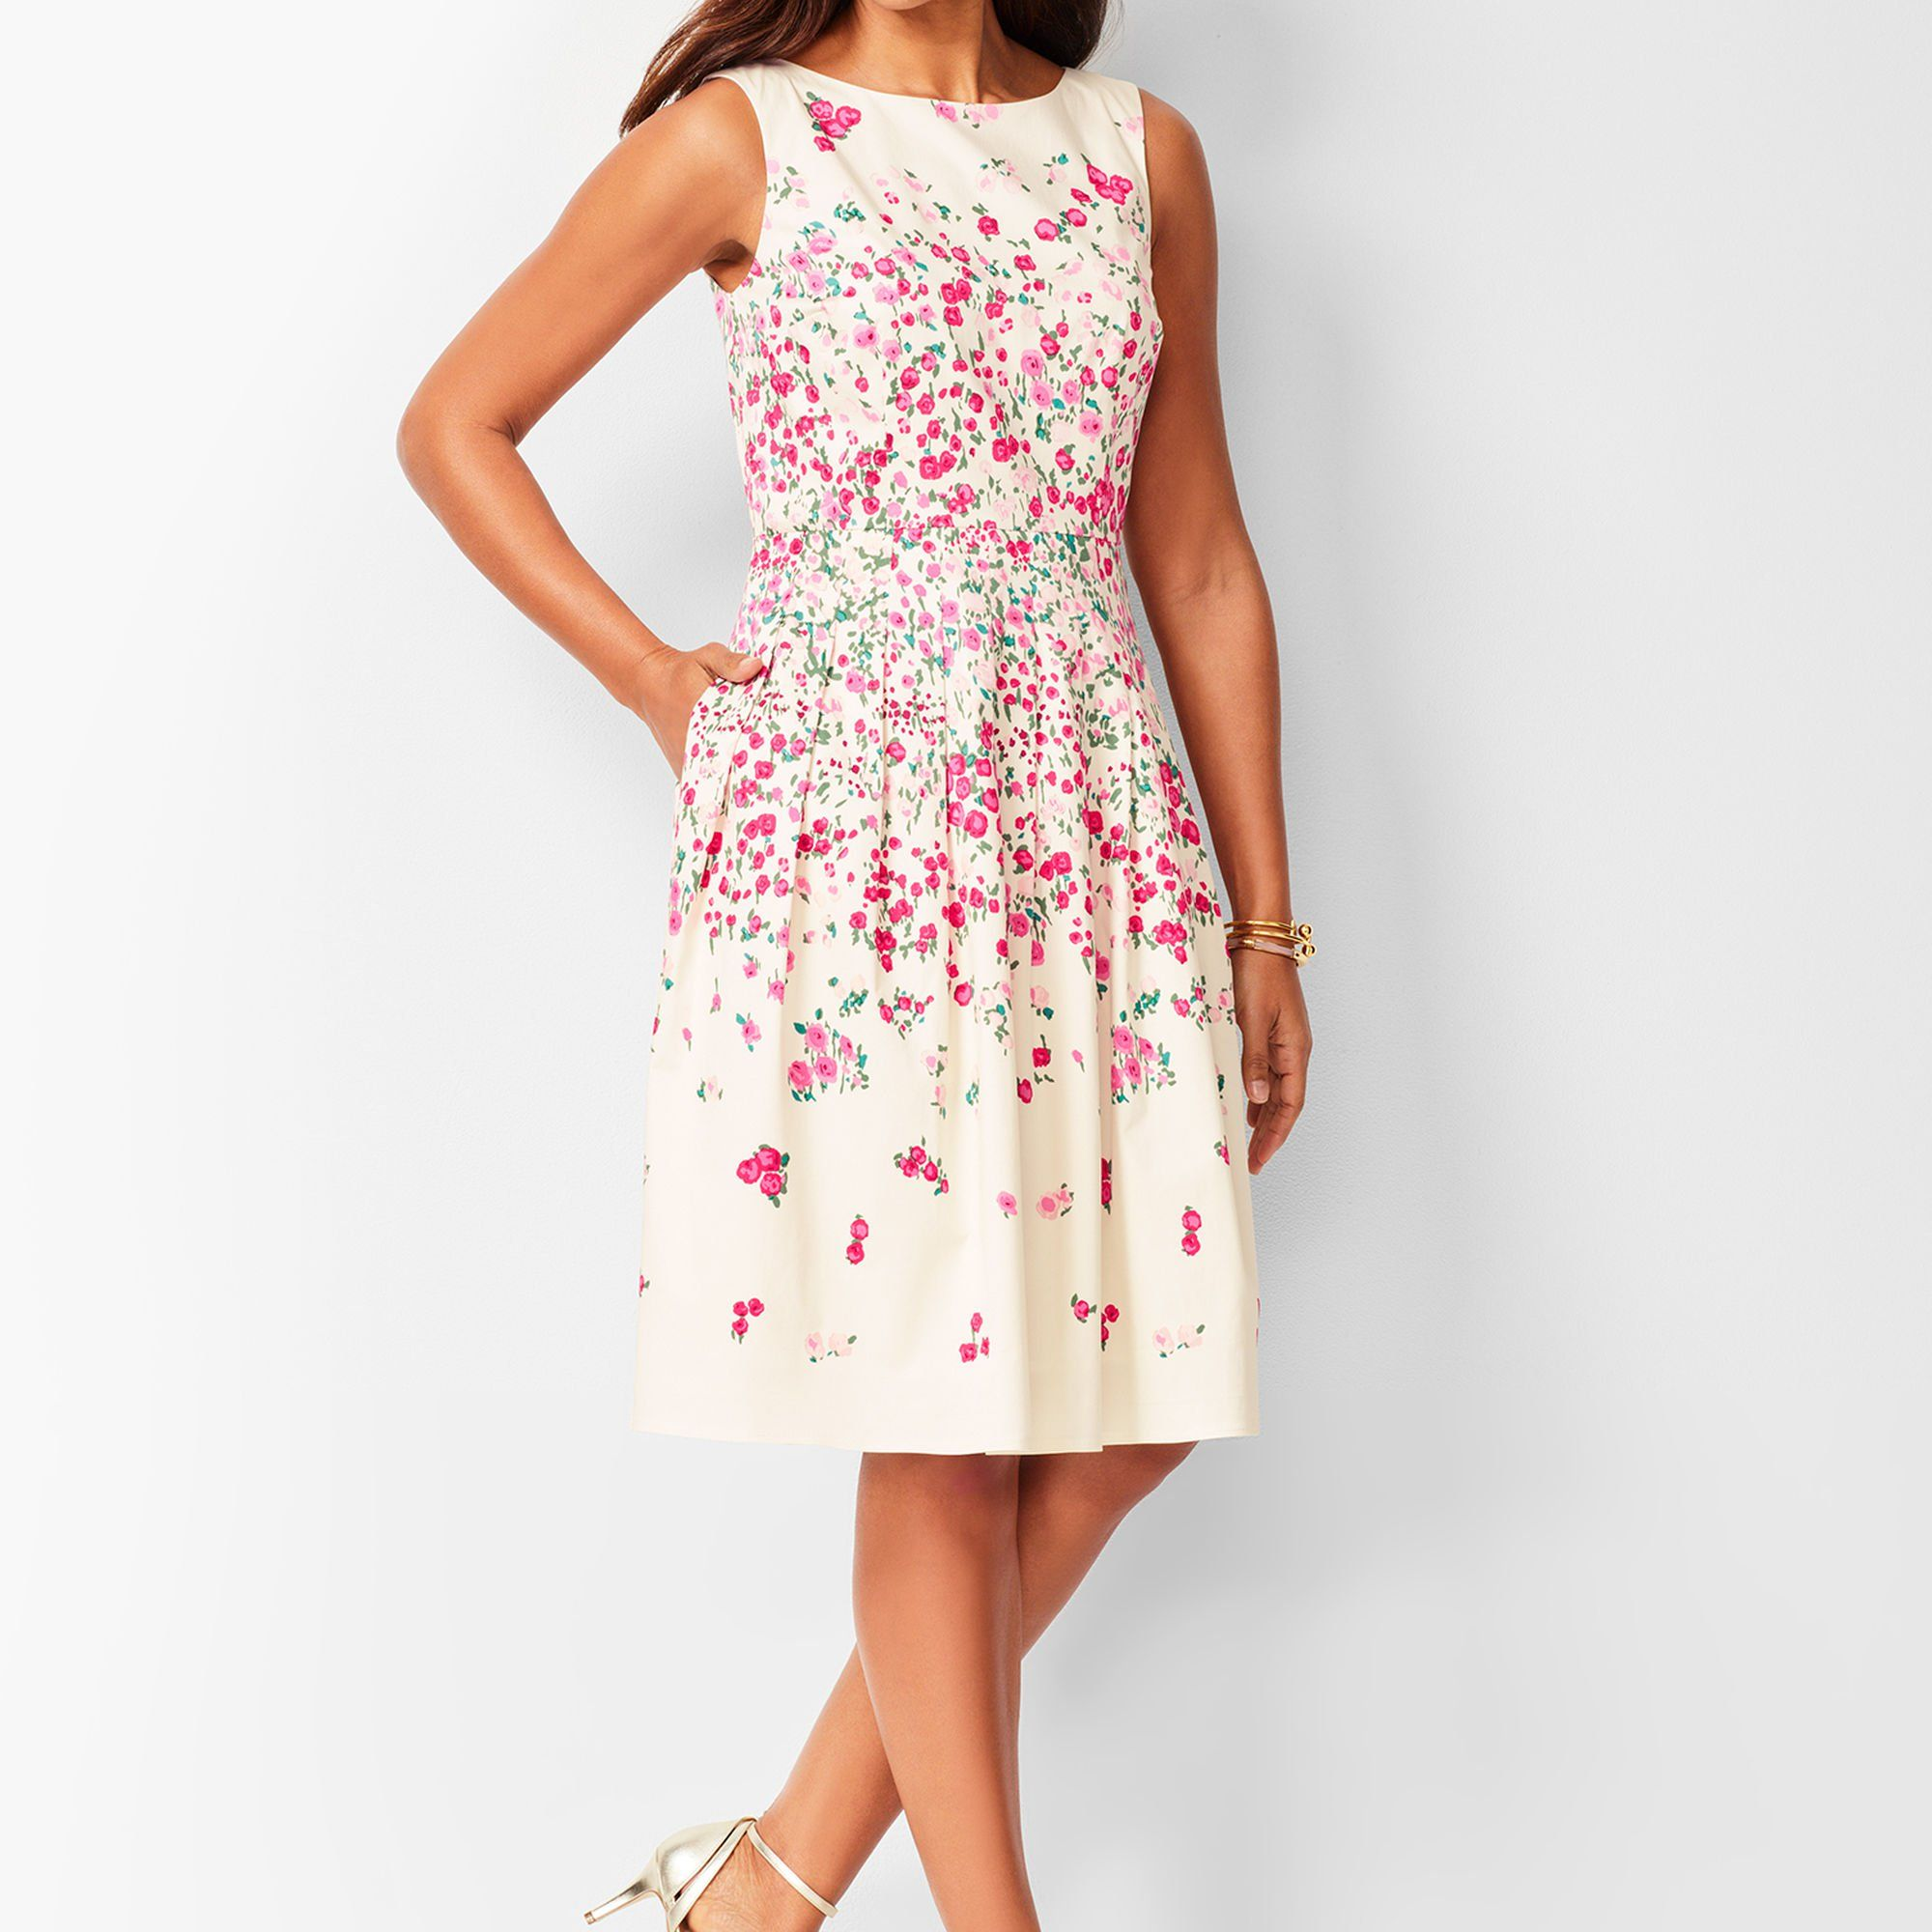 Floral Print Crisscross Fit Flare Dress Forever 21 Fit And Flare Dress Outfits Cute Dresses [ 1125 x 750 Pixel ]